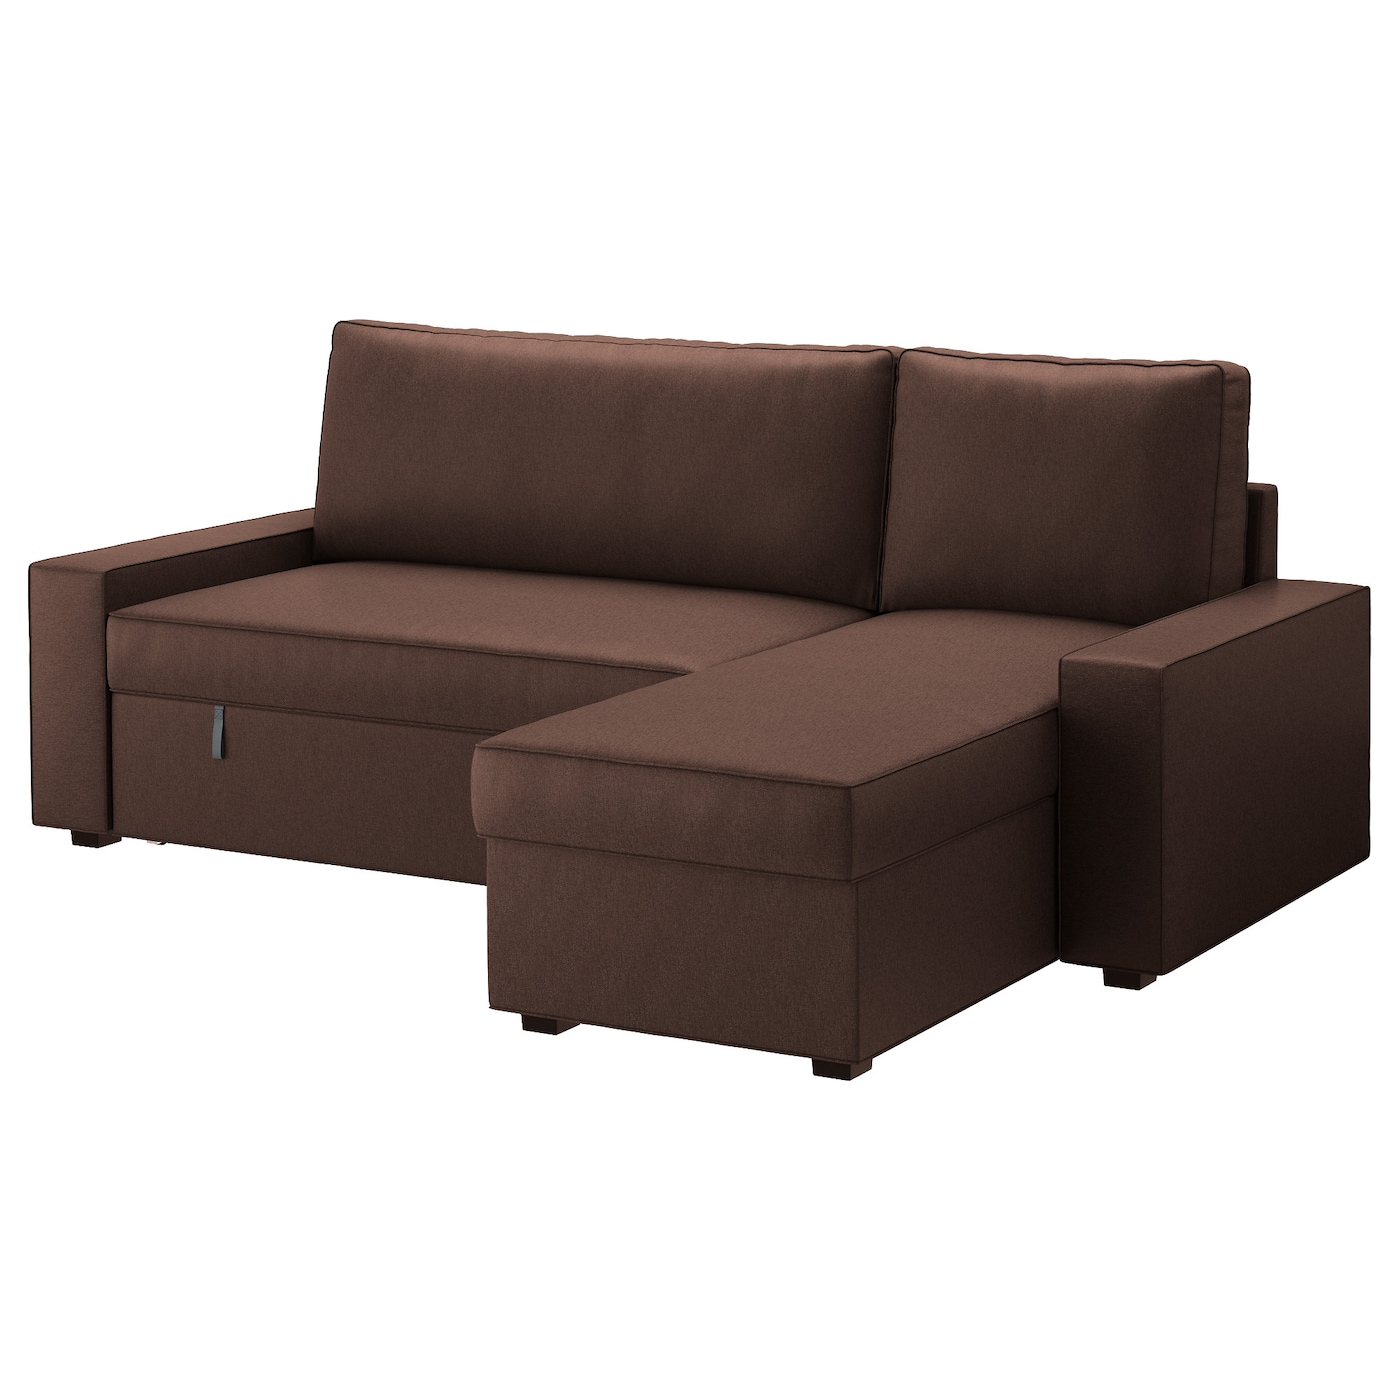 vilasund sofa bed with chaise longue borred dark brown ikea